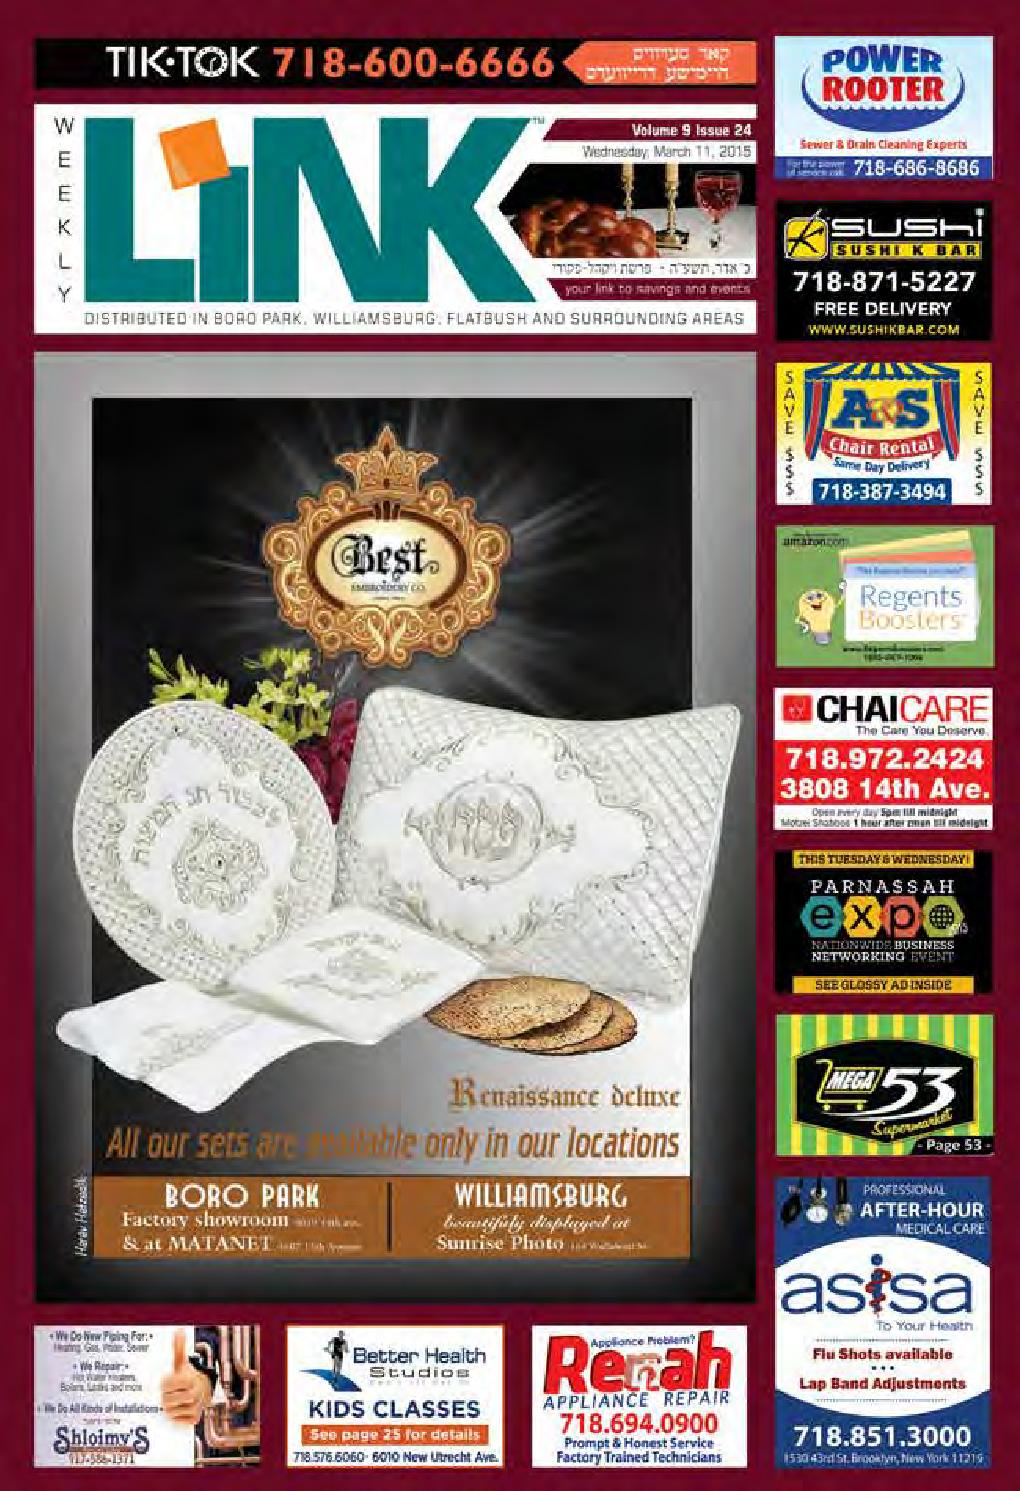 Vol 9 issue 24 by Weekly Link - issuu